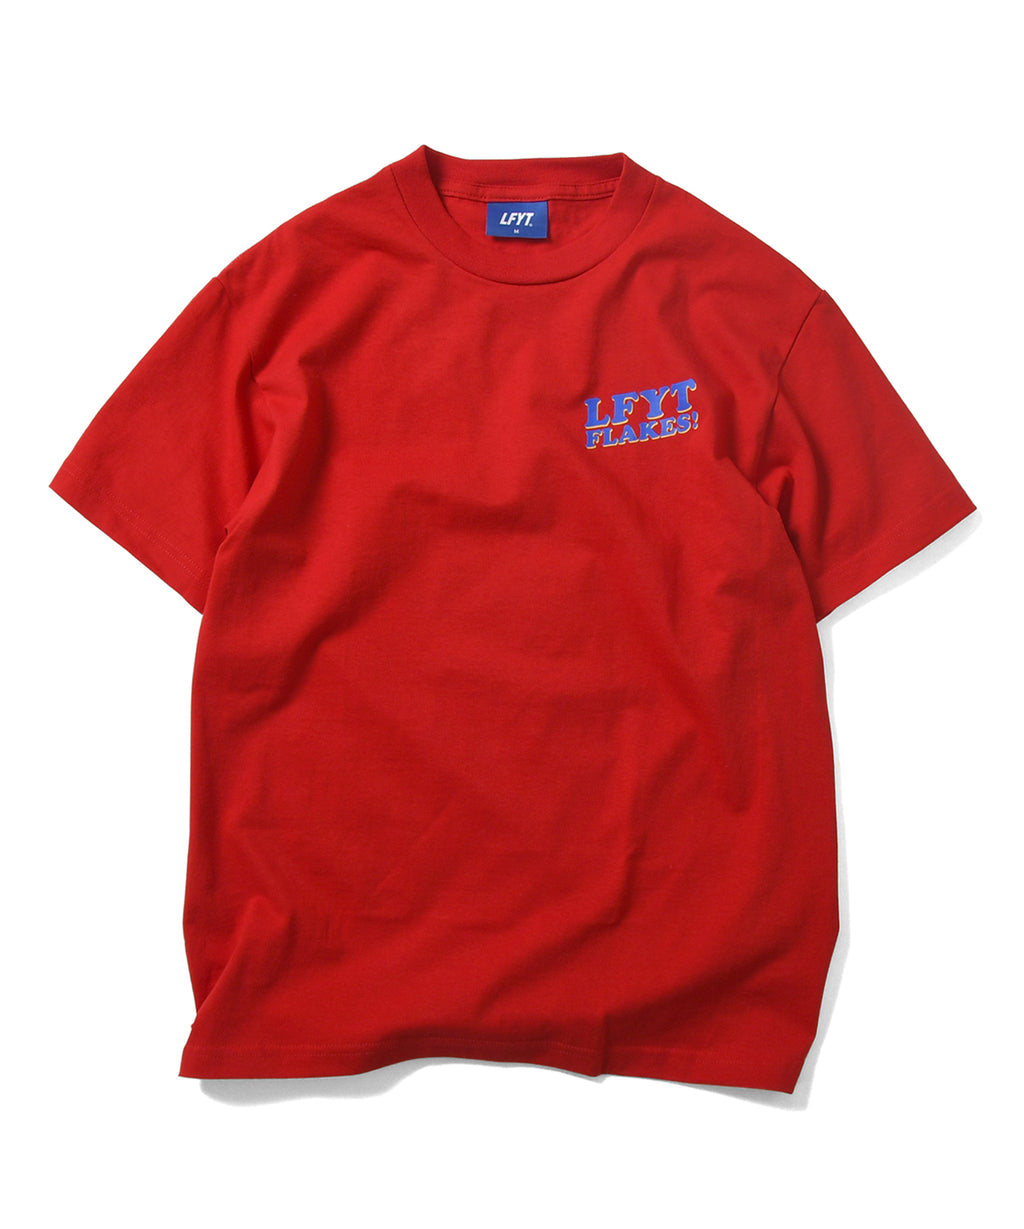 FLAKES! TEE LS210118 RED